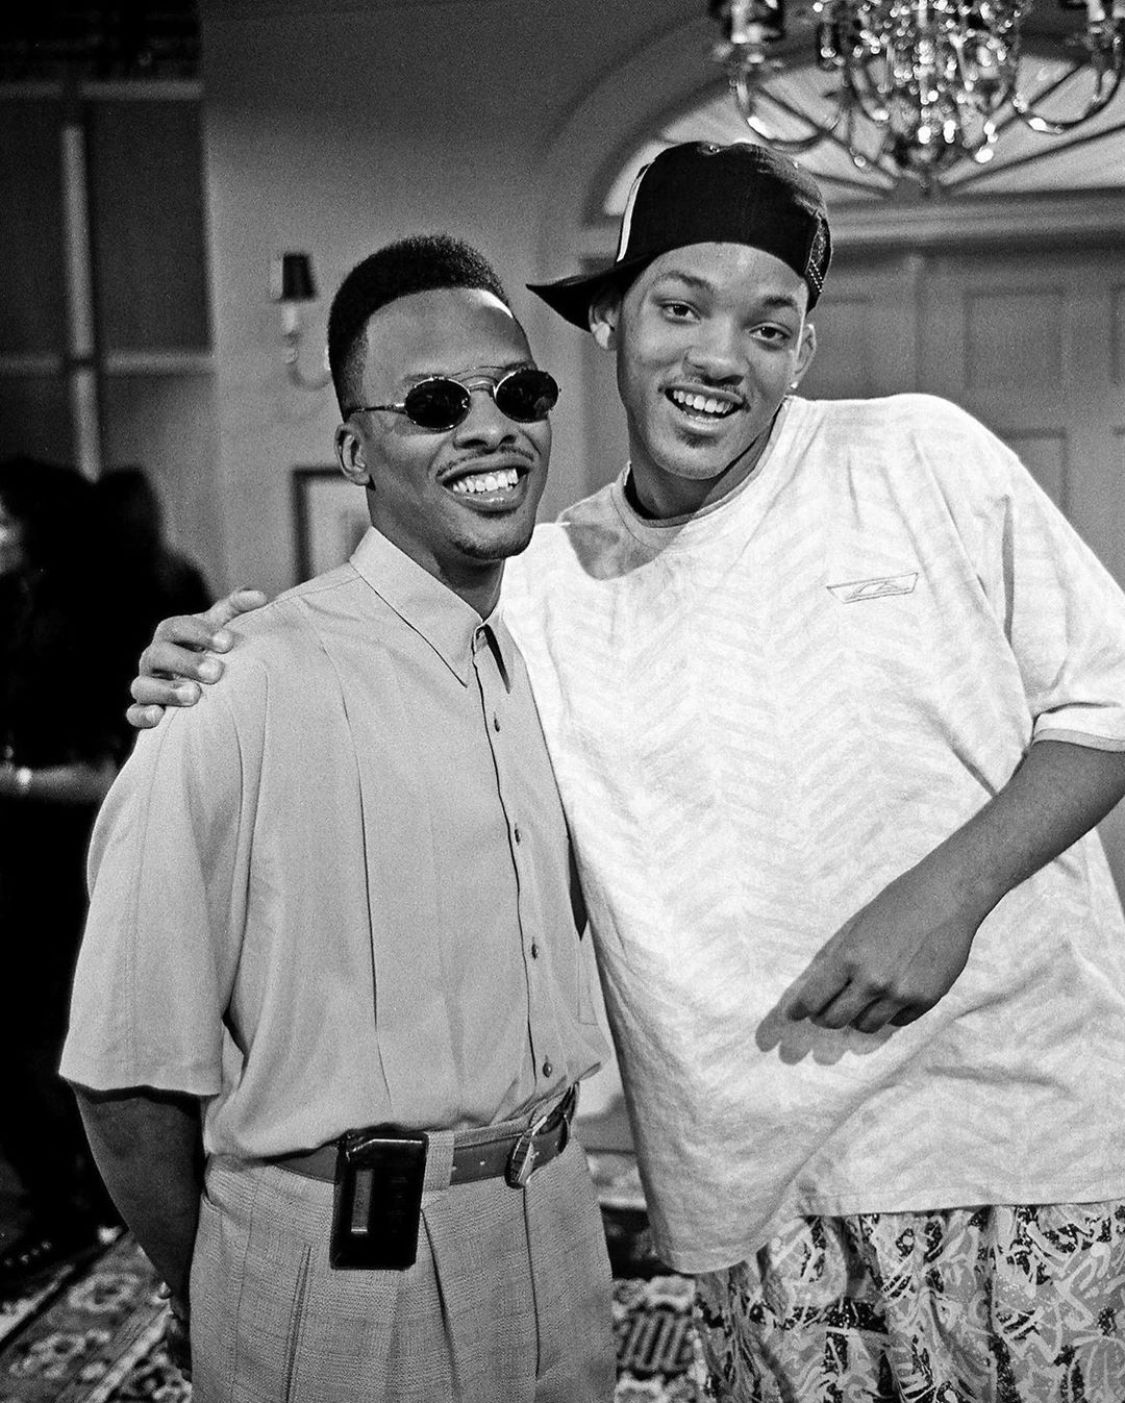 A lovely photo showing young Will Smith and a colleague while on set and they look amazing.